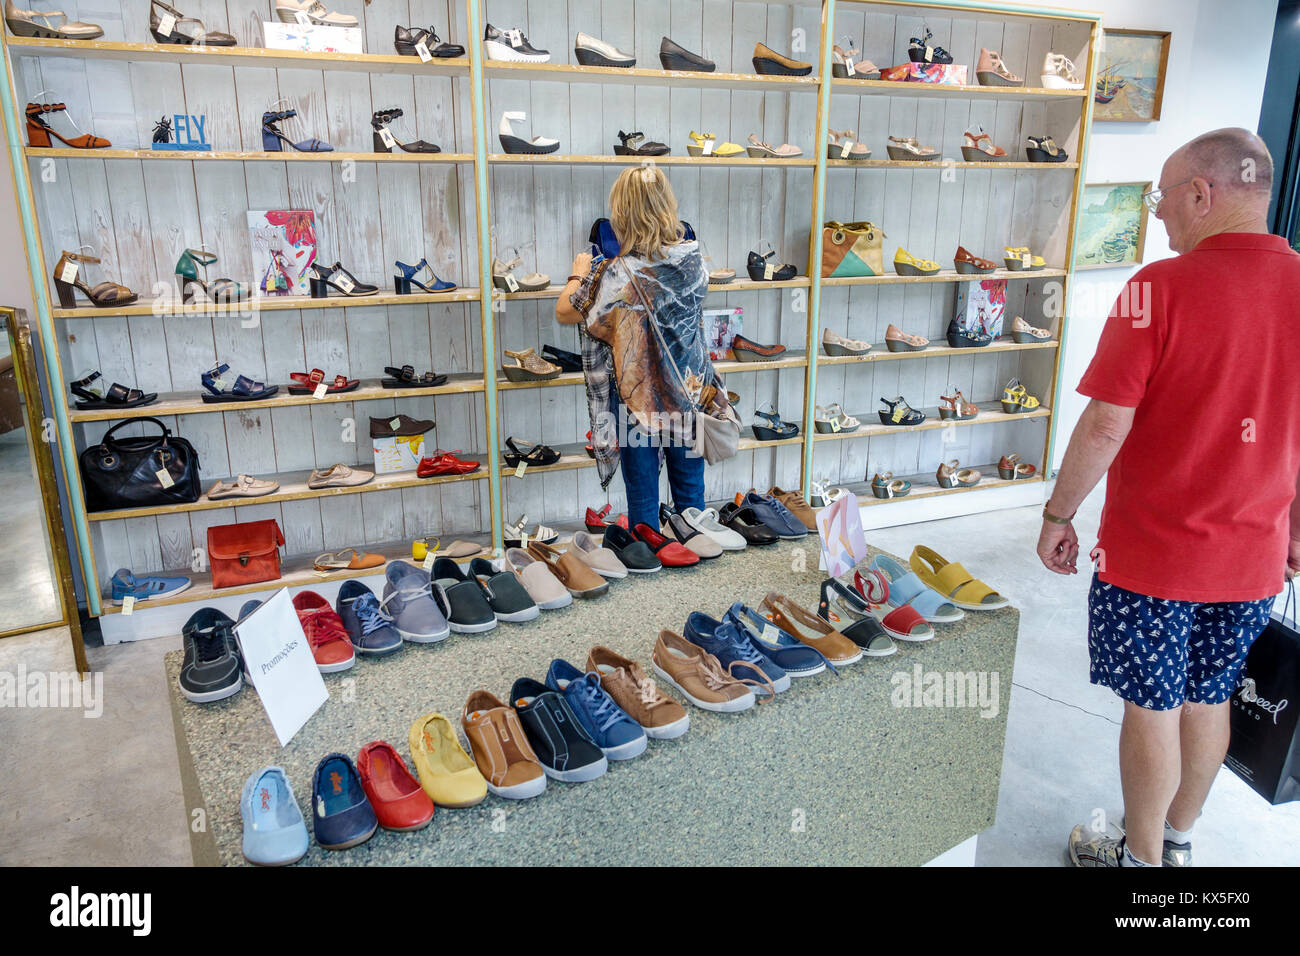 83ce4b955 Porto Portugal historical center Praca de Lisboa Fly London shoe store  footwear boutique shopping man woman for sale promotion Portuguese Europe  EU European ...